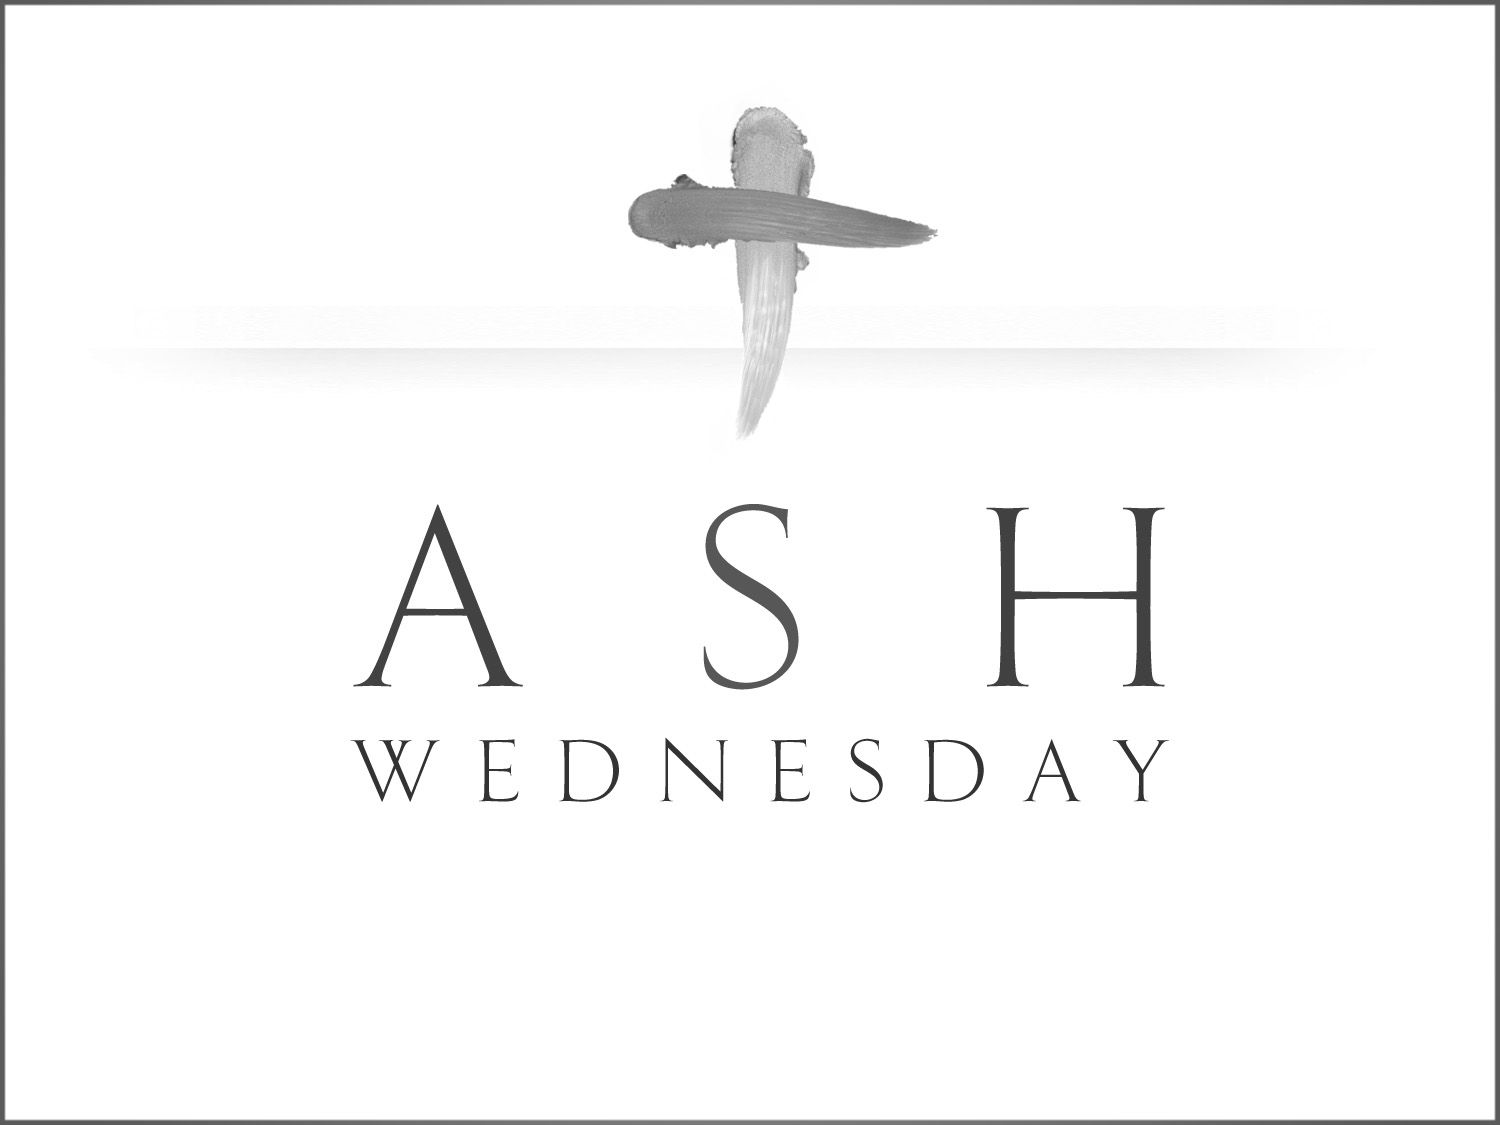 Free Download Ash Wednesday Images Pictures, Wallpapers